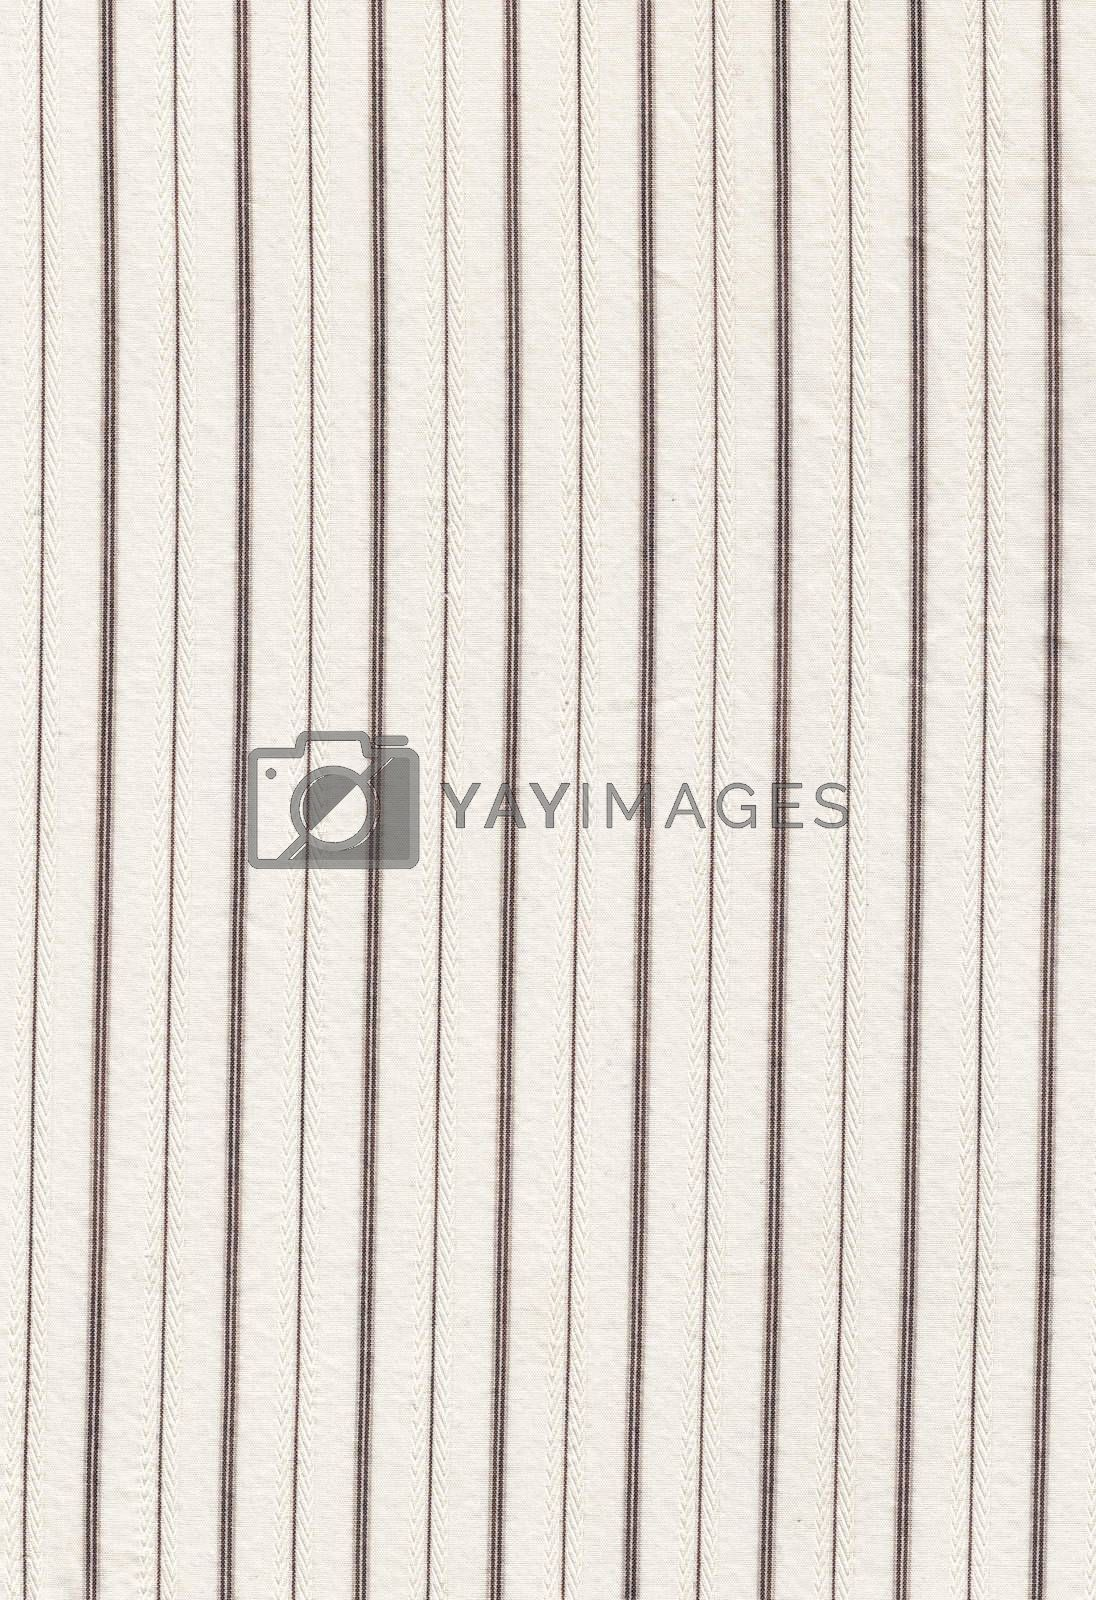 A nice vintage fabric texture. High resolution image. Great for scrap booking, photo albums, or just design elements for your design.